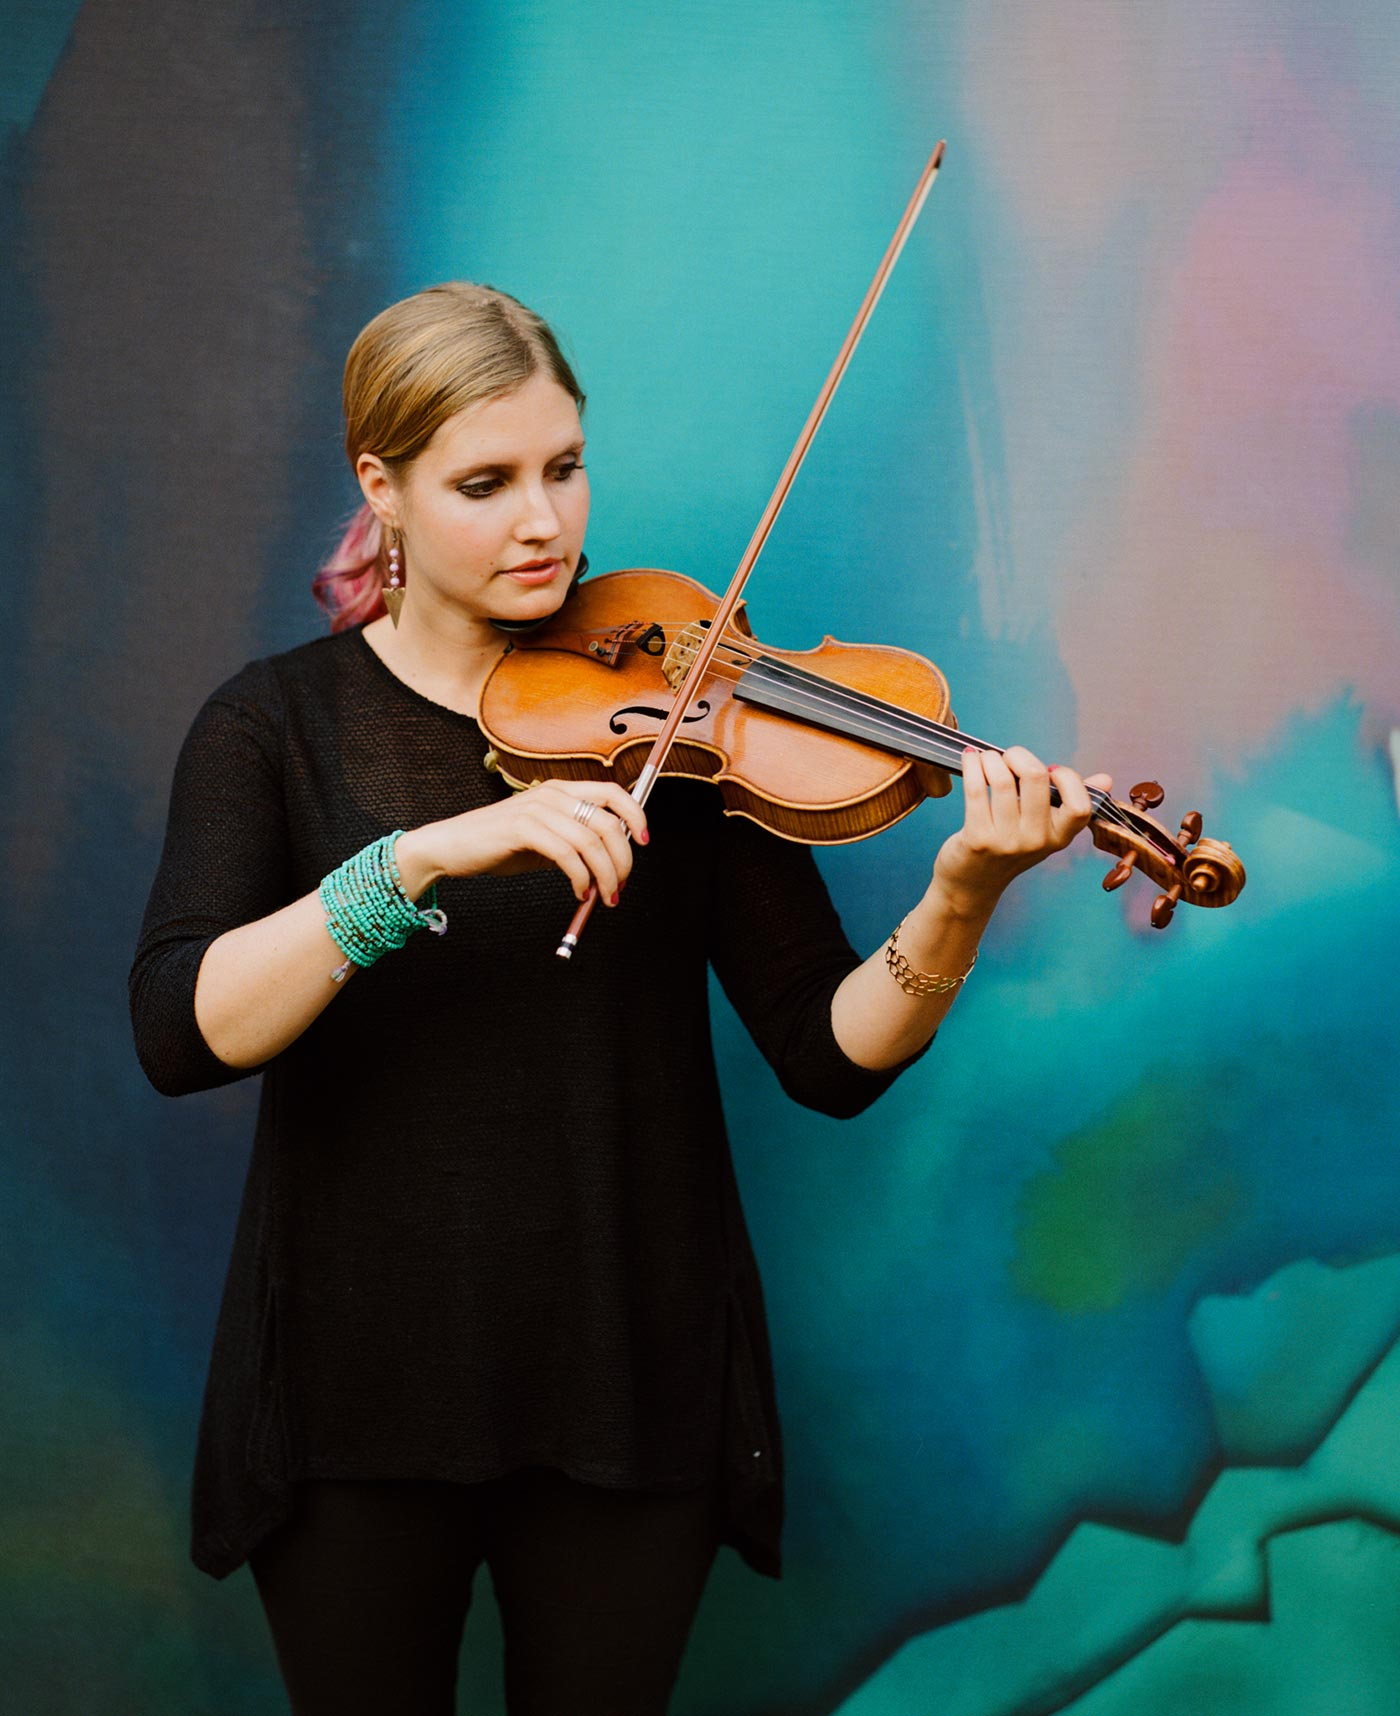 Rachel Nesvig playing violin in front of a colorful backdrop